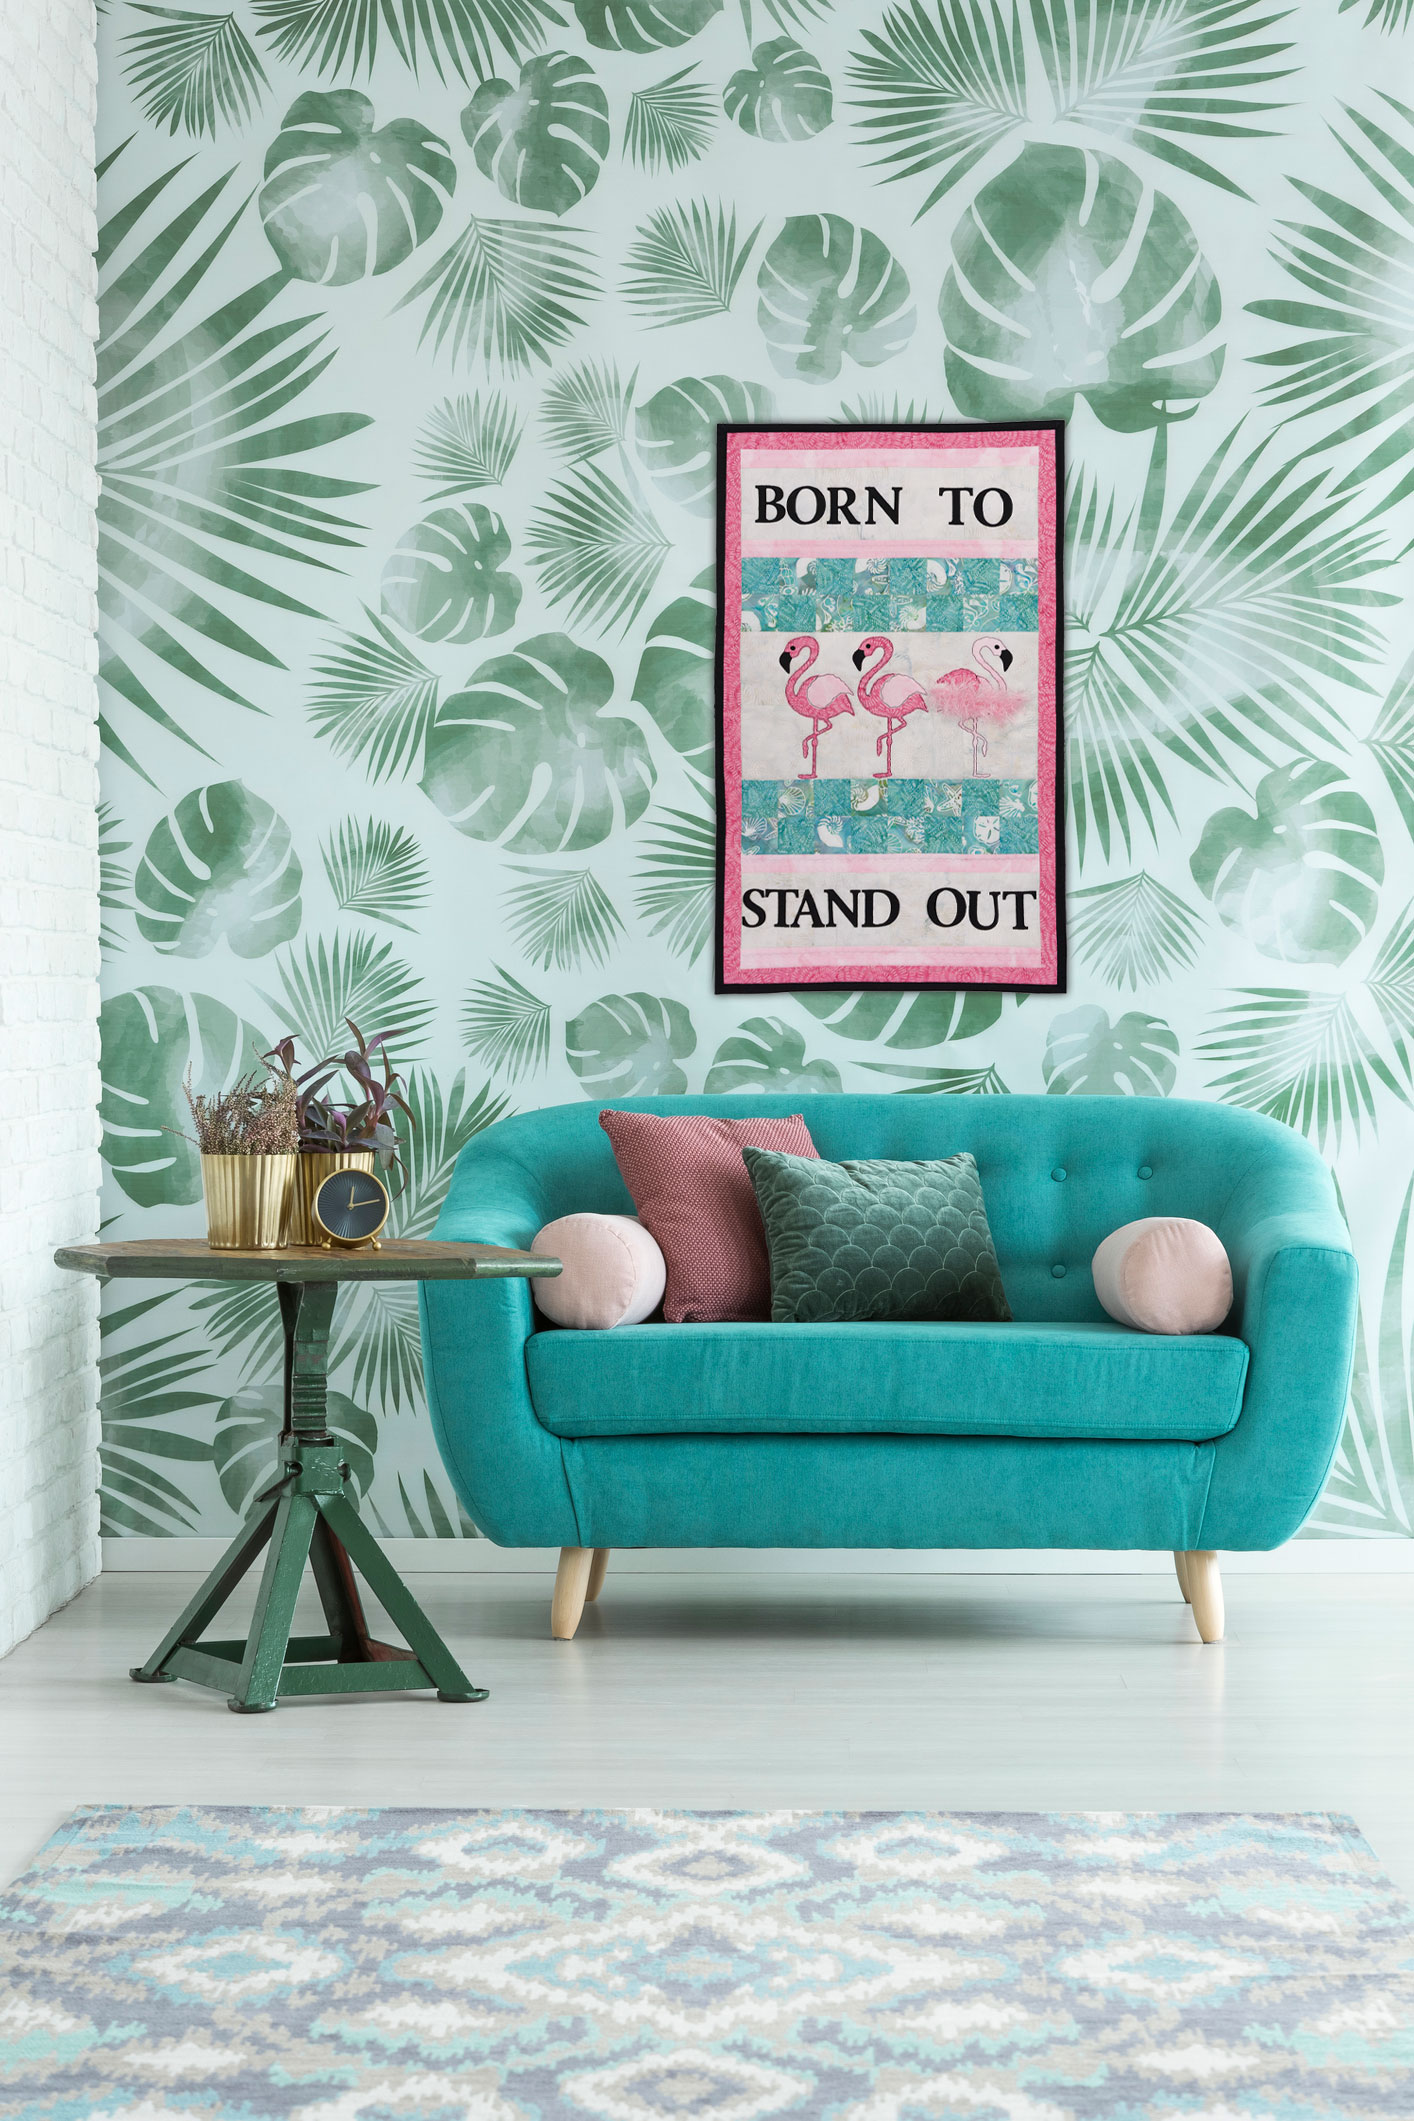 PQ11947-GO!-Born-to-Stand-Out-Wall-Hanging-Lifestyle-vert_HQ